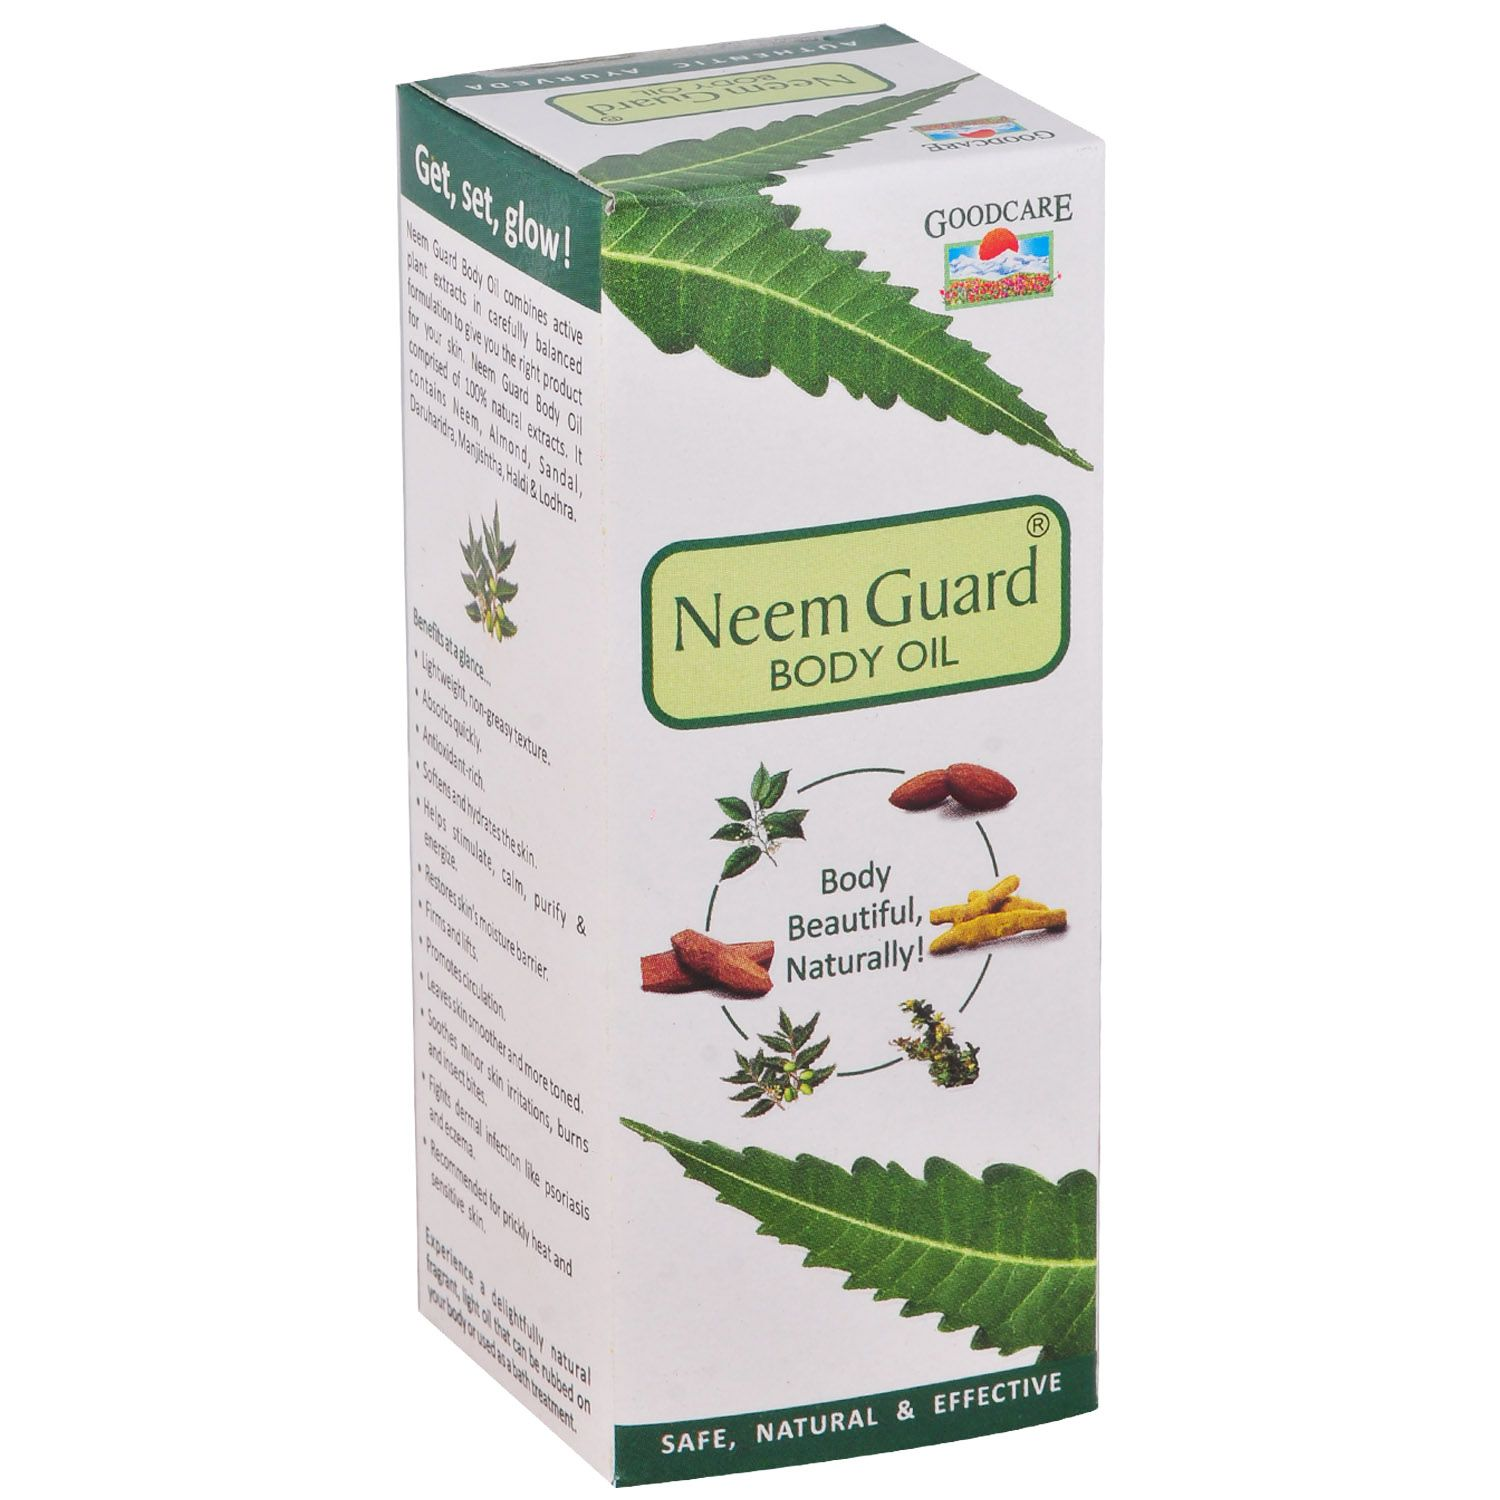 Goodcare Neem Guard Body Oil 100ml, Beautiful Your Body Naturally